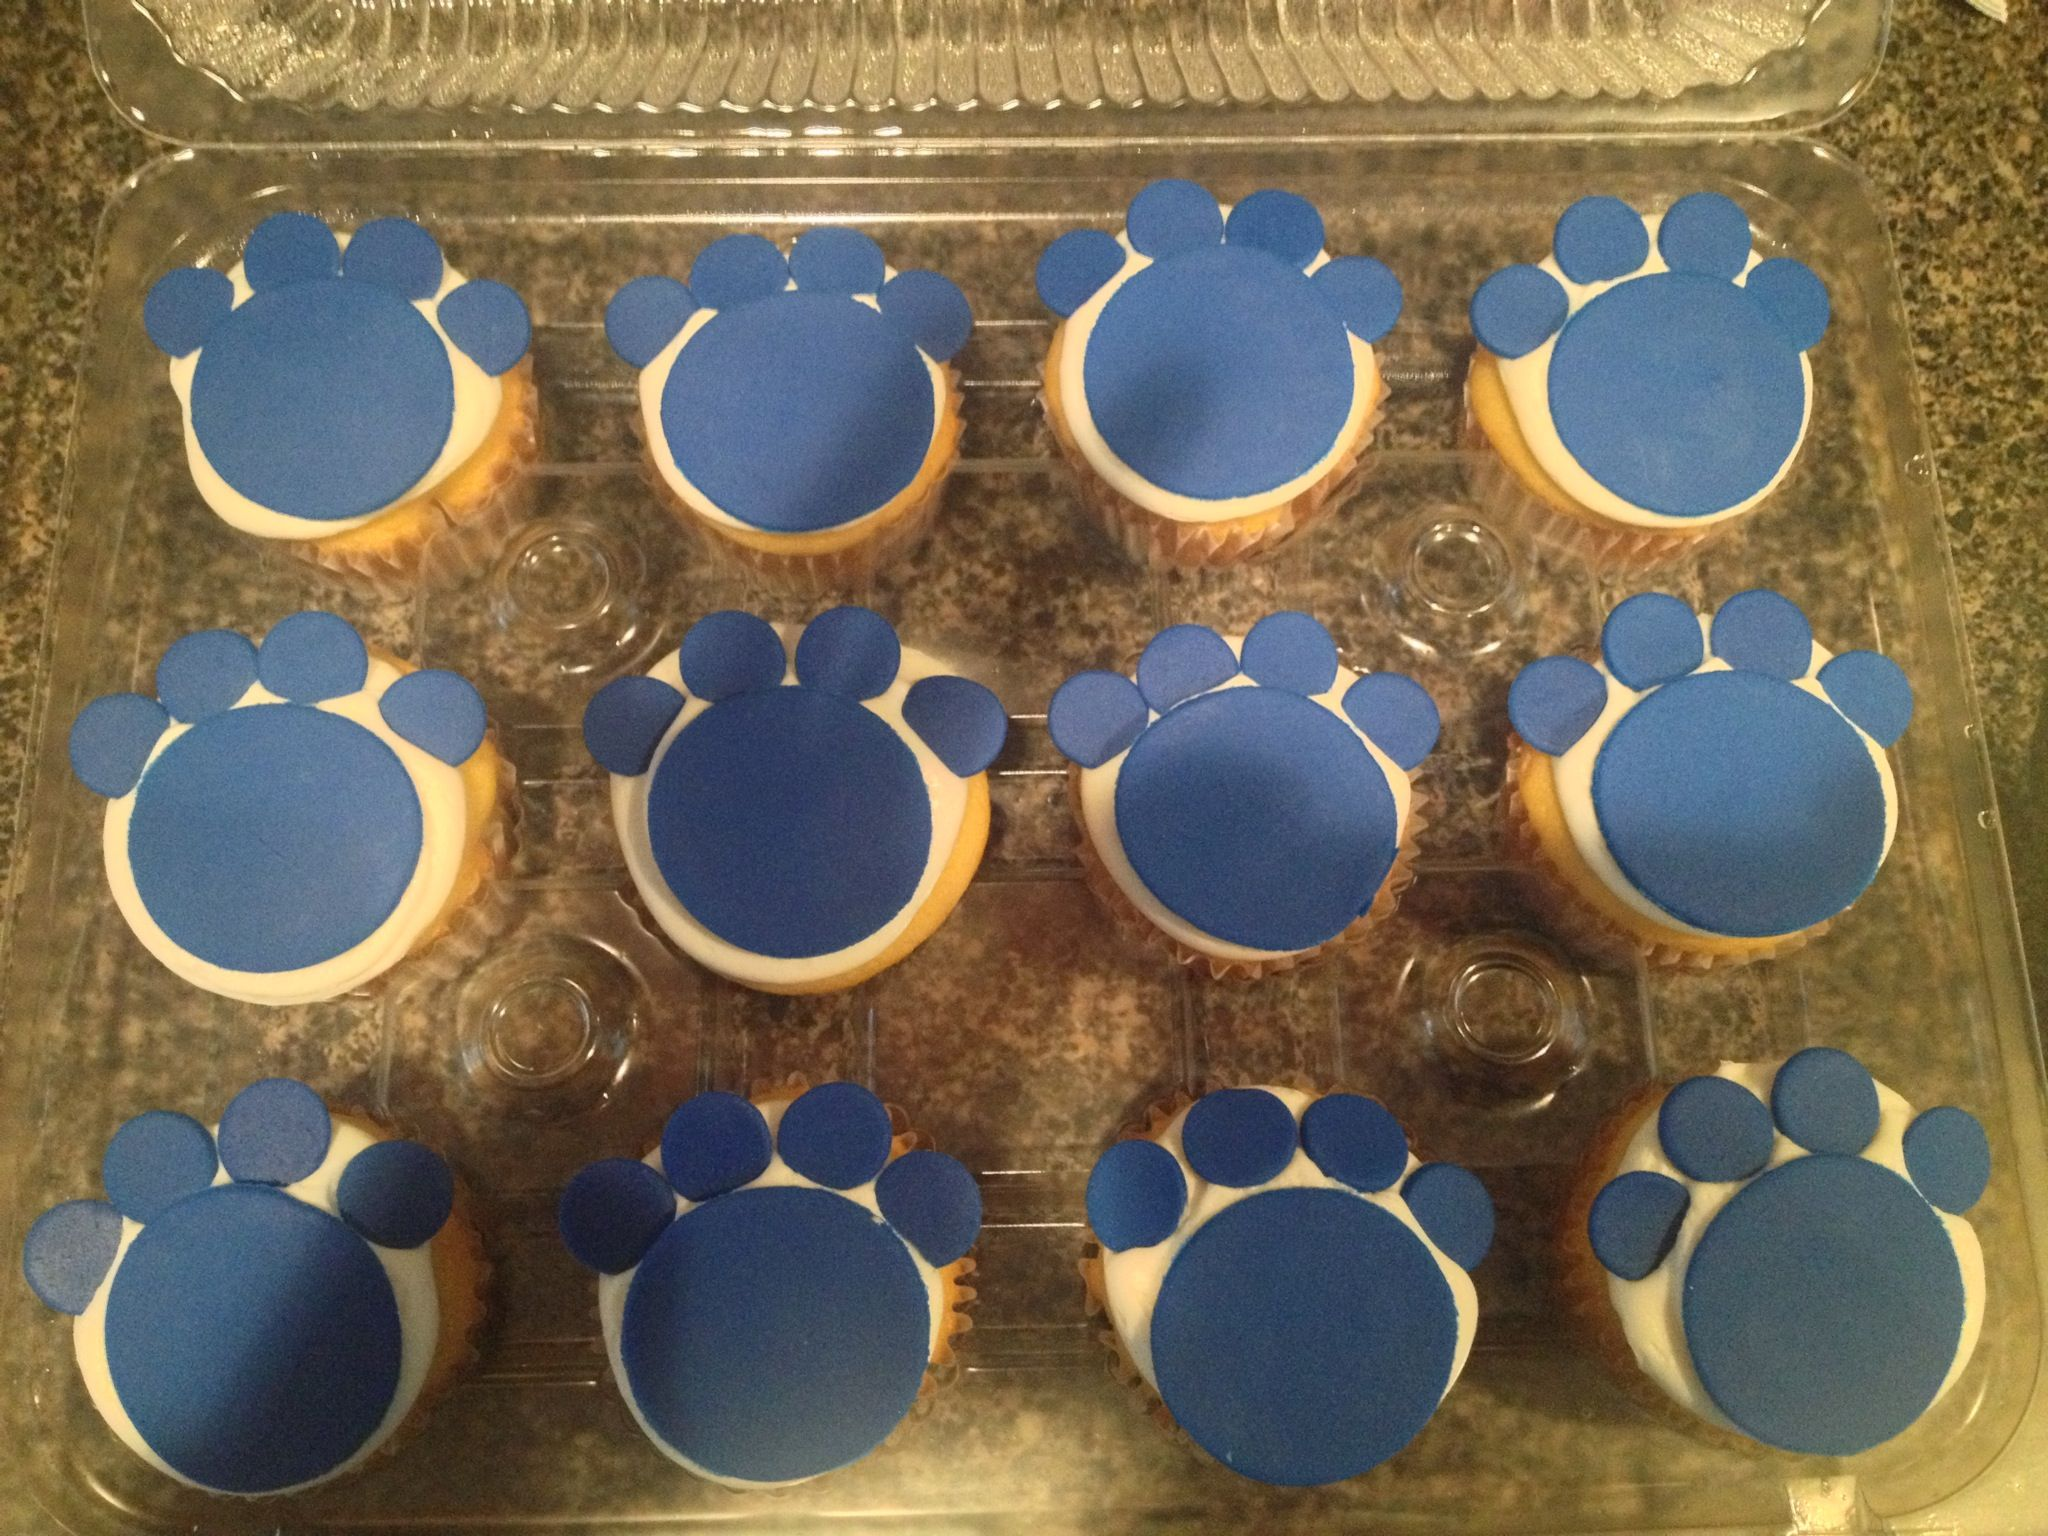 Kentucky wildcats pawprints cupcakes. Made by Tannicakes on FB